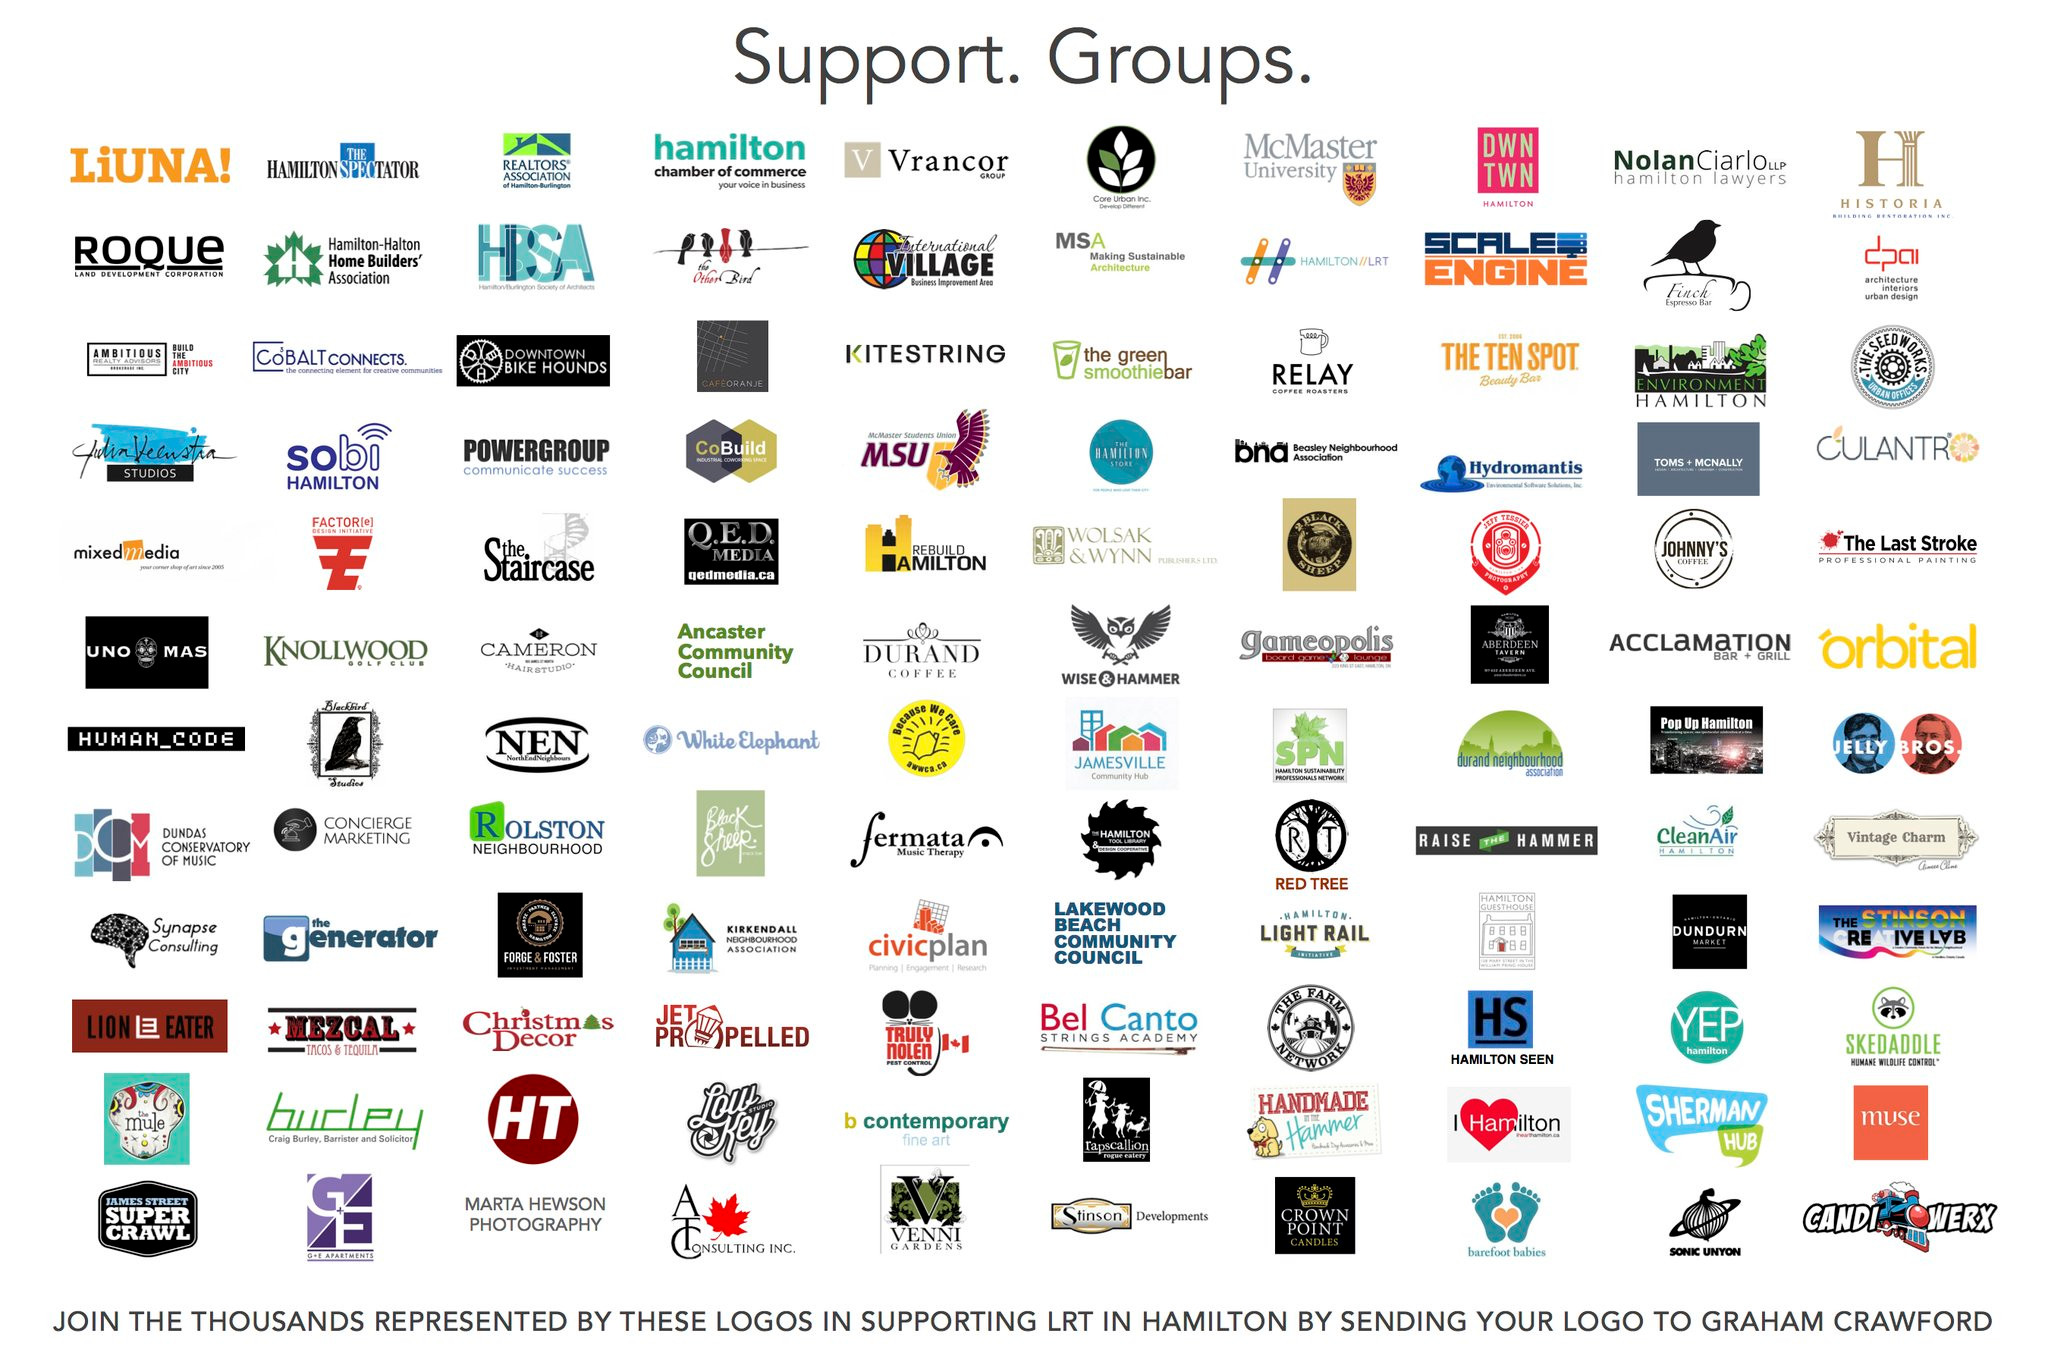 LRT Support Groups, up to 120 organizations now